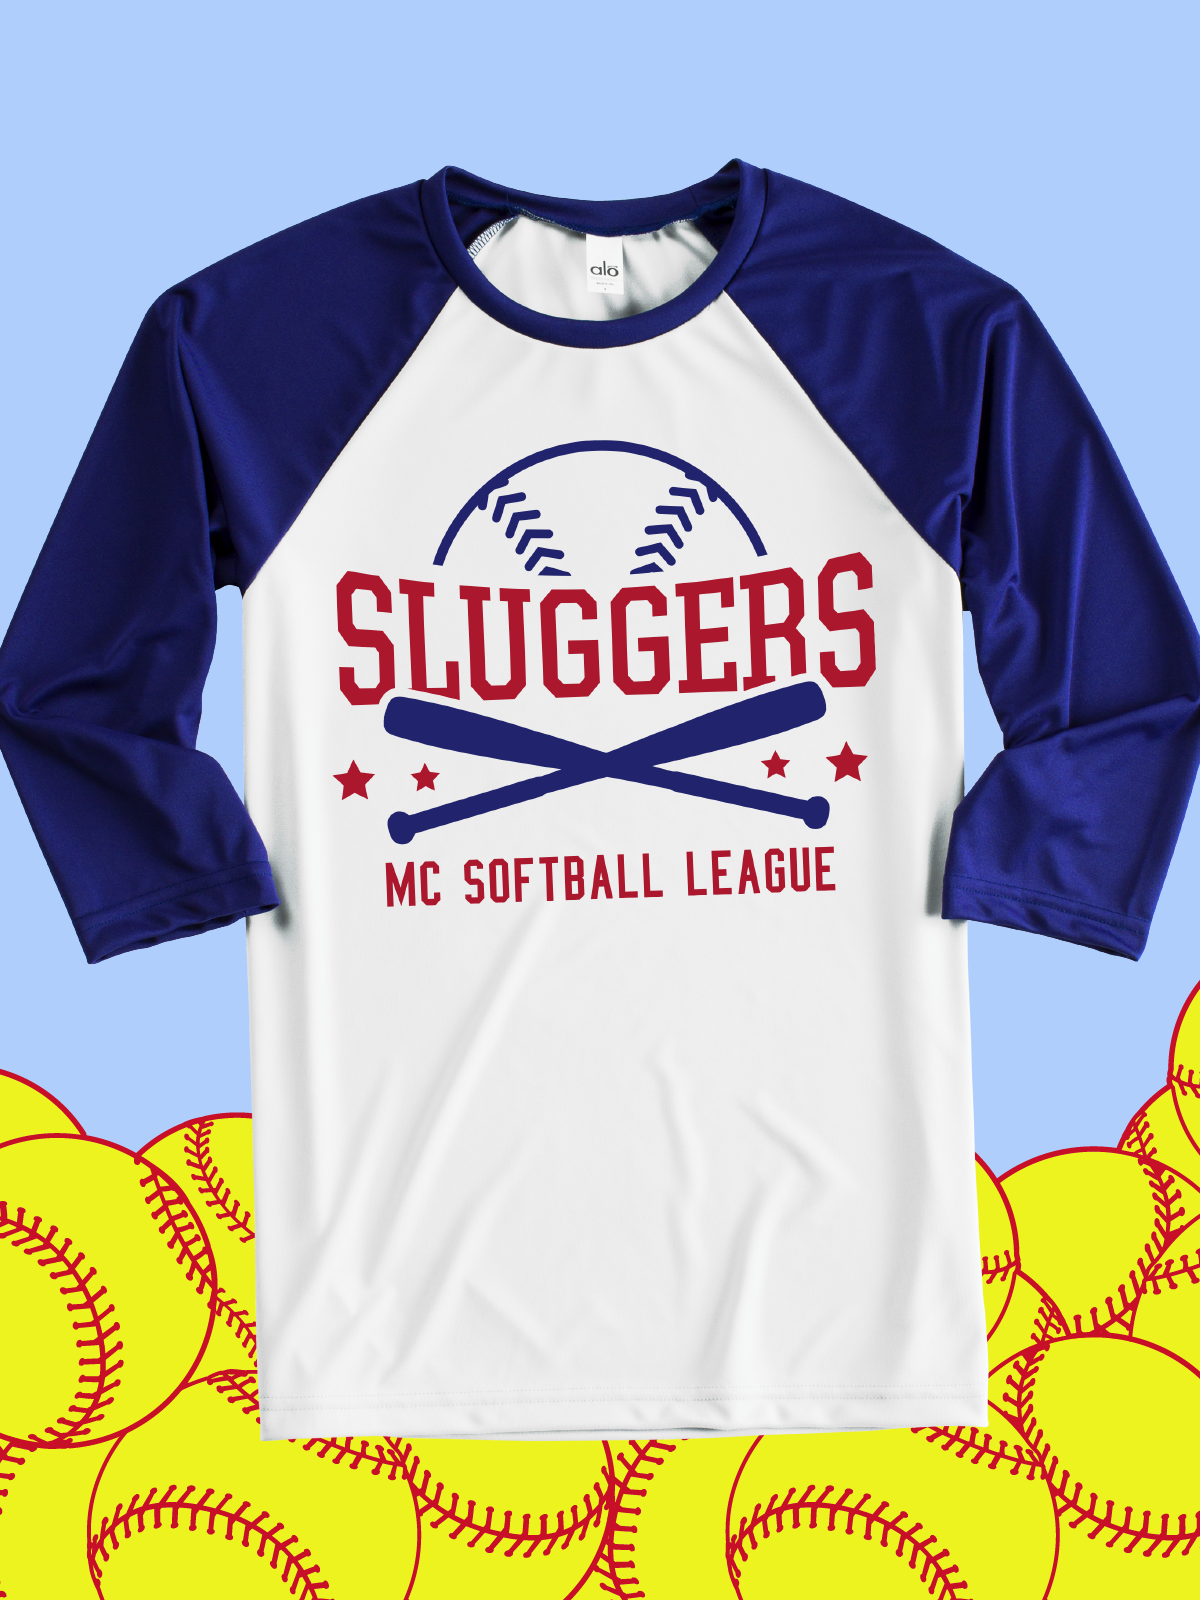 Add Your Softball Team Name To Your Team Shirtsdesign The Perfect